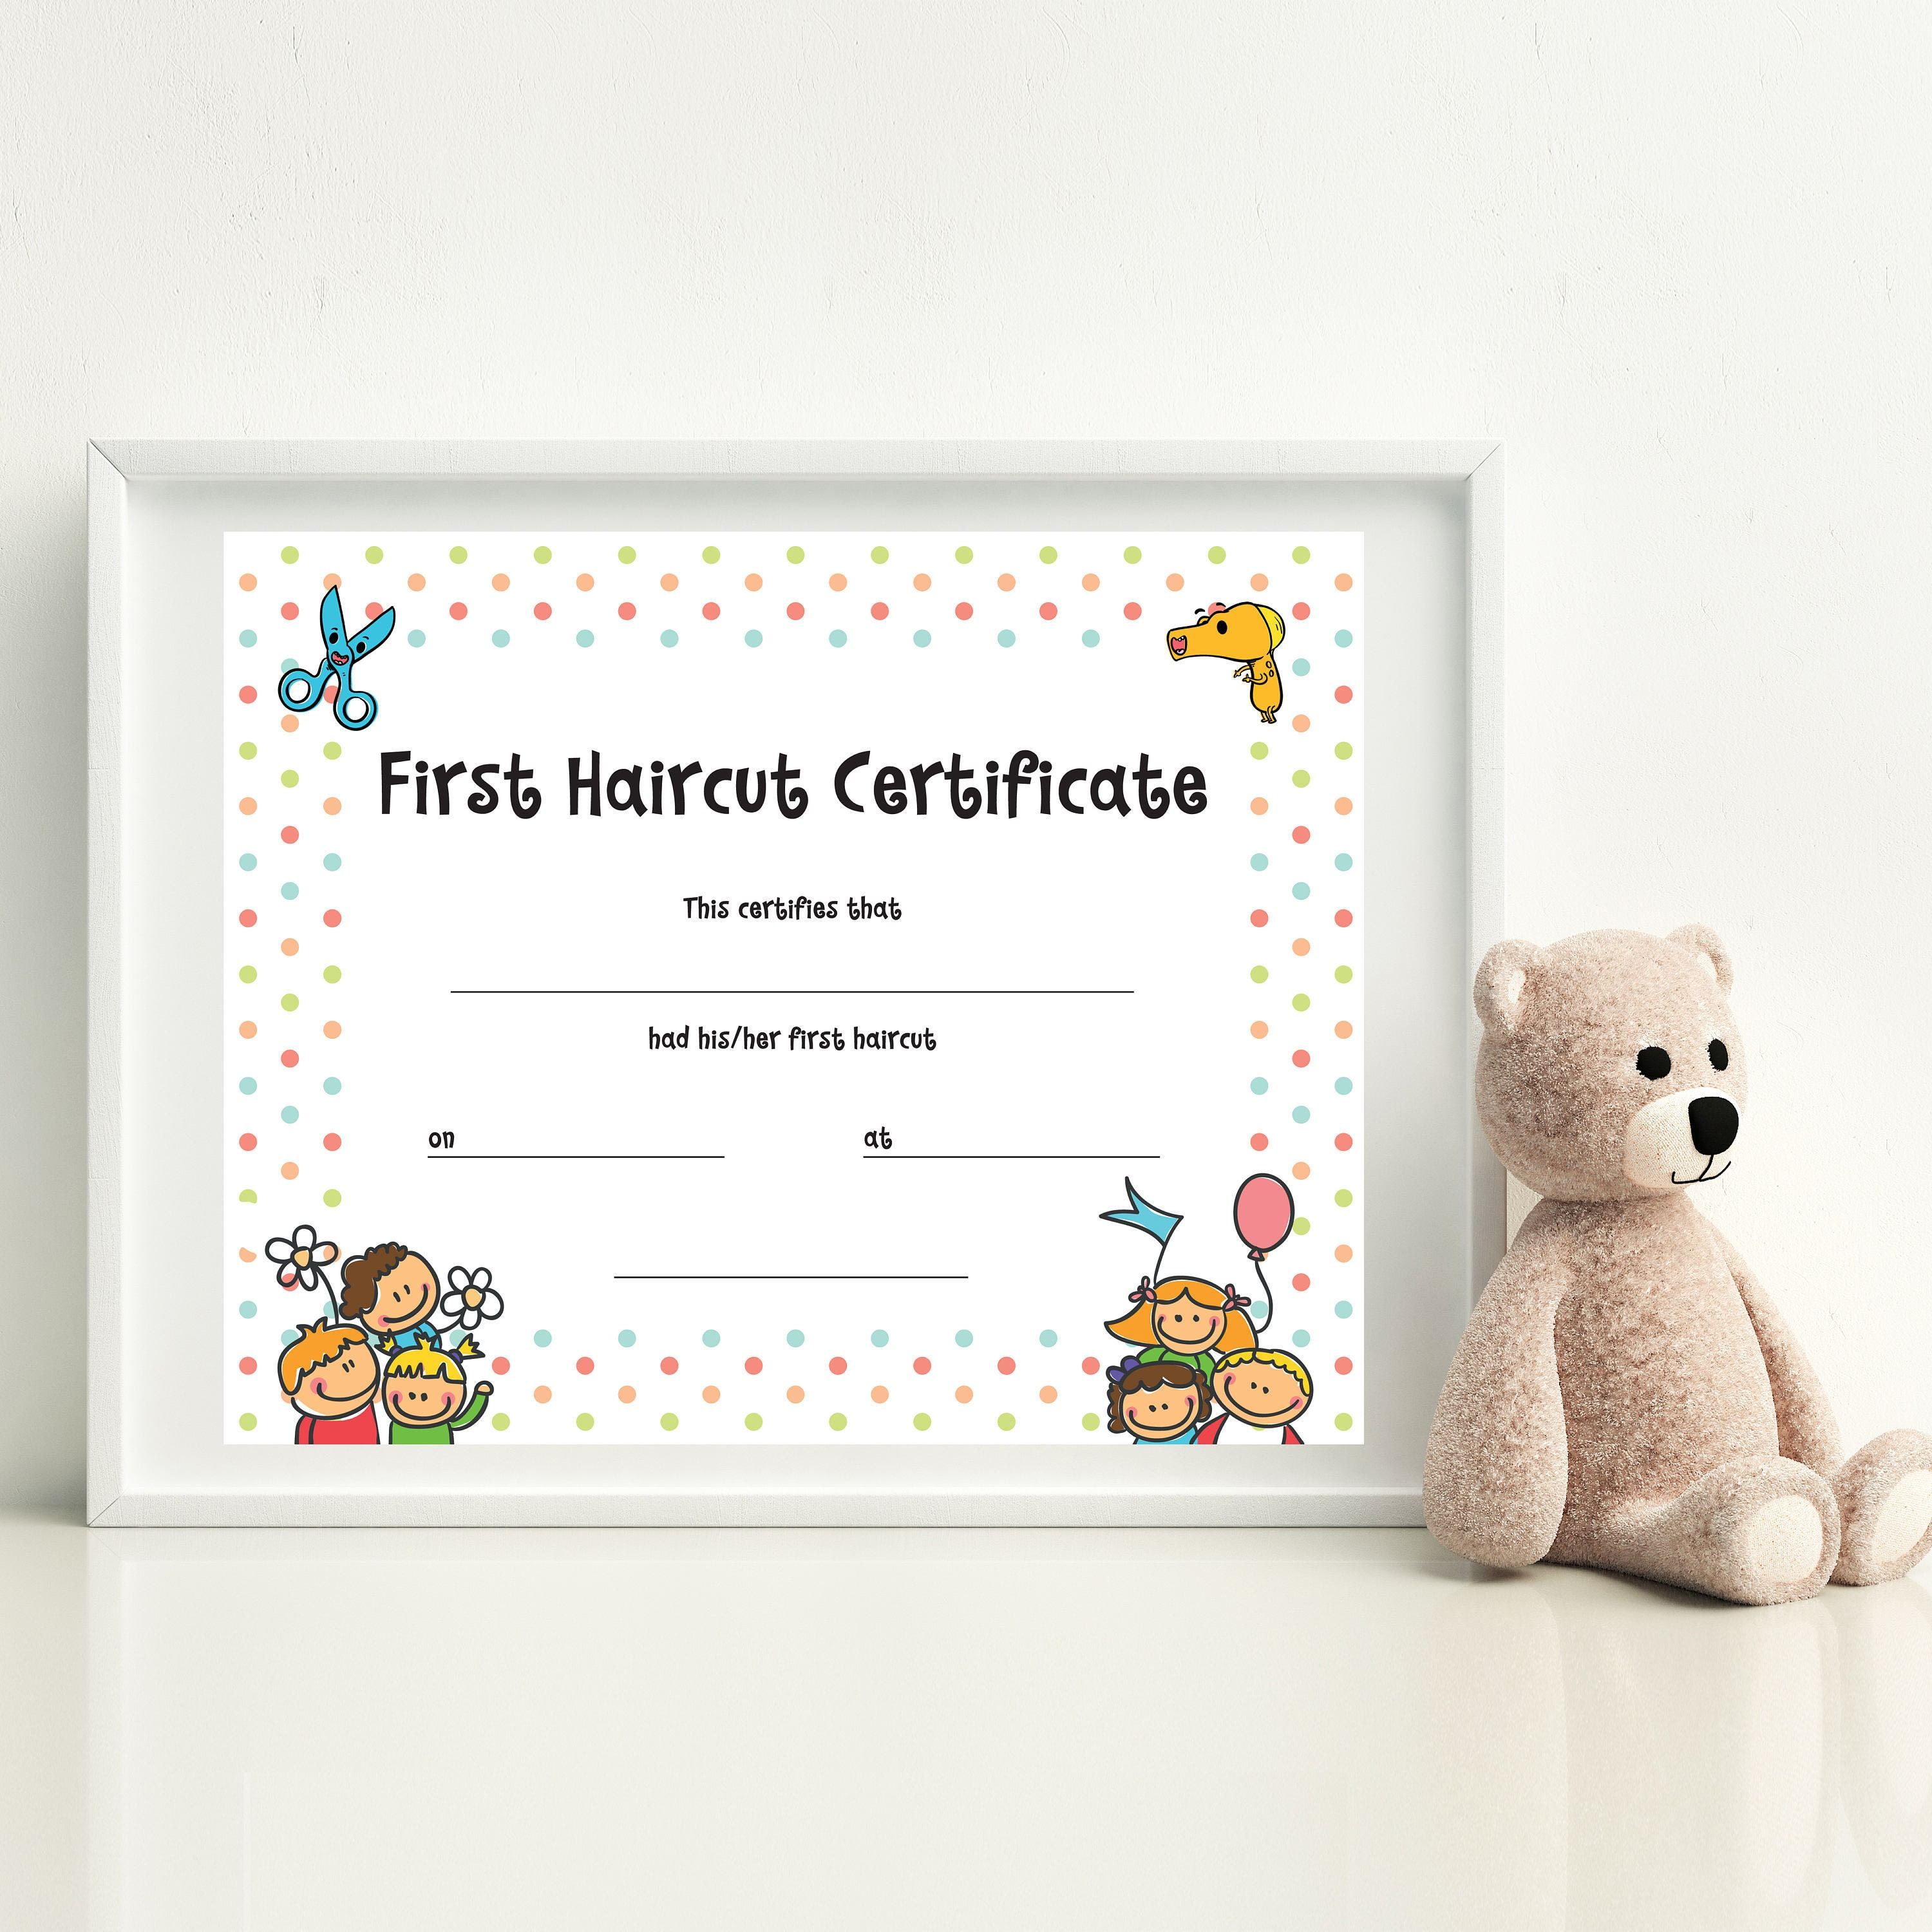 Haircut Certificate First Haircut Certificate Christmas Etsy